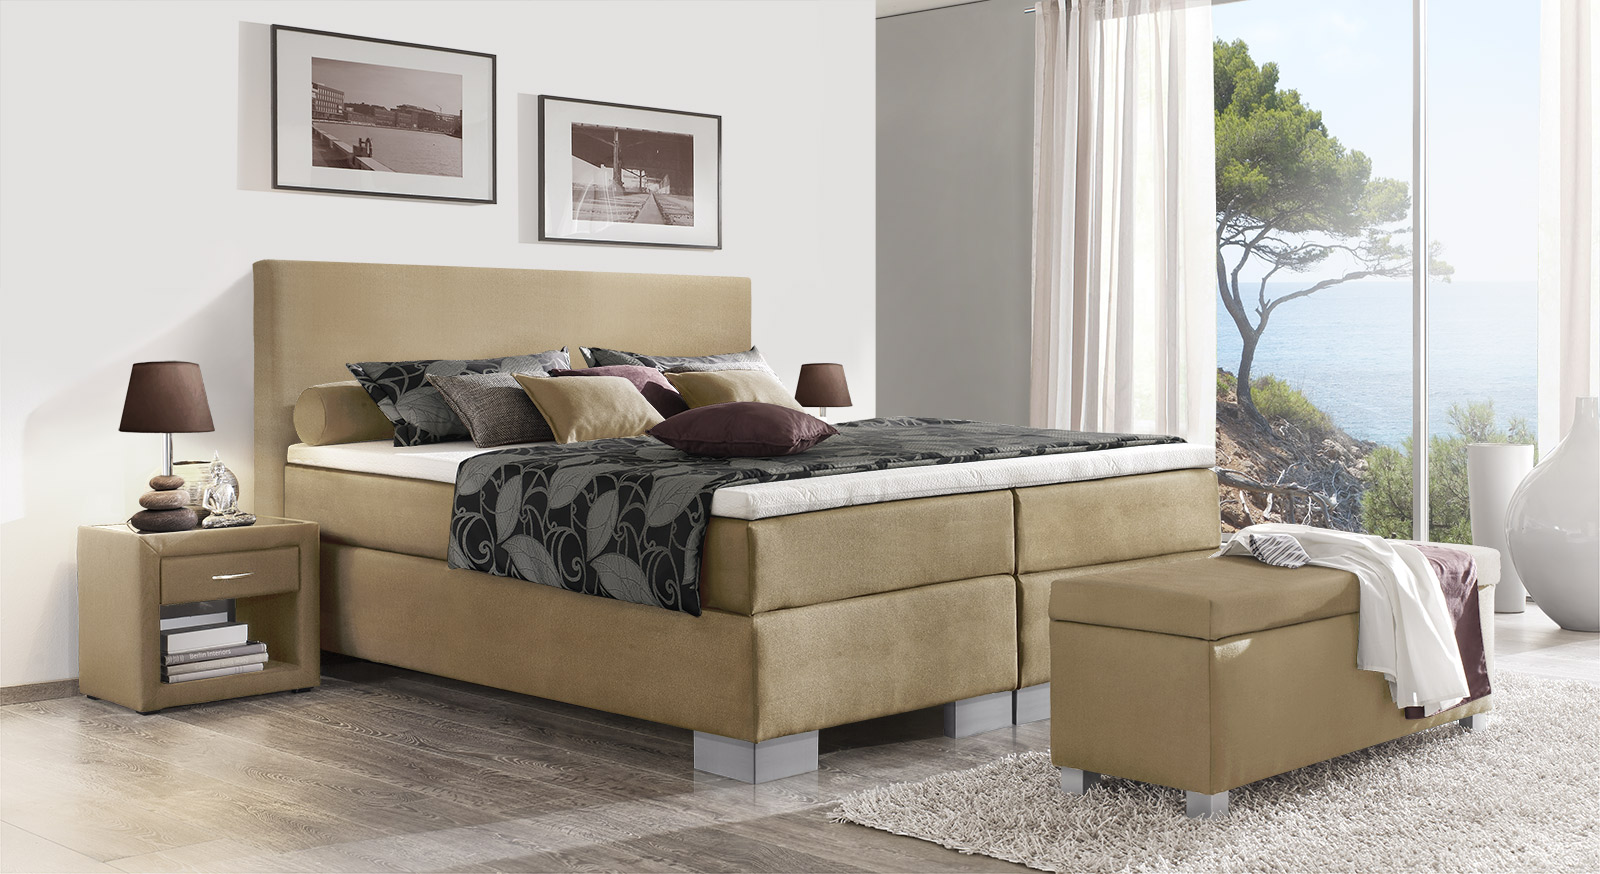 Boxspringbett Puebla in naturfarbenem Webstoff in 66 cm Höhe